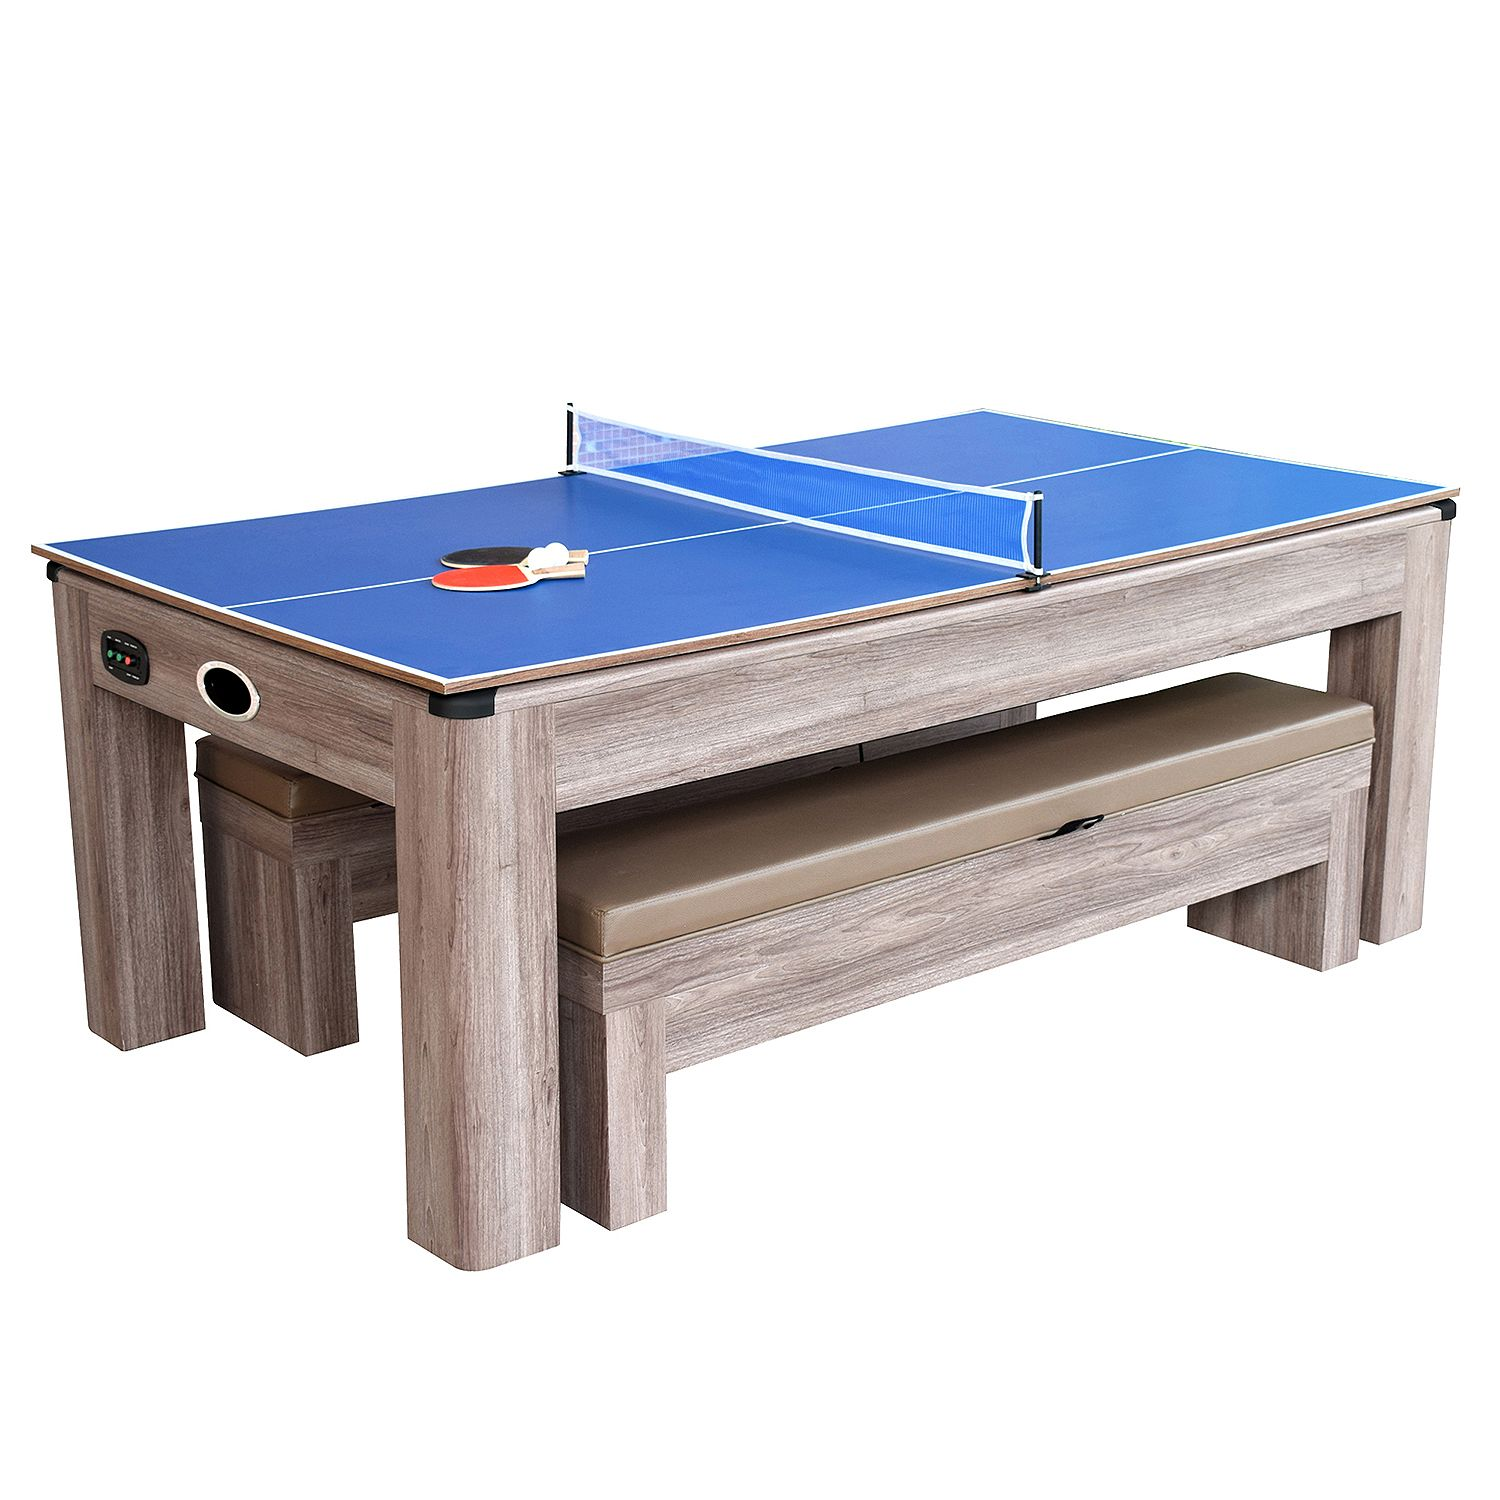 Perfect Driftwood 7 Ft Air Hockey Table Combo Set With Benches